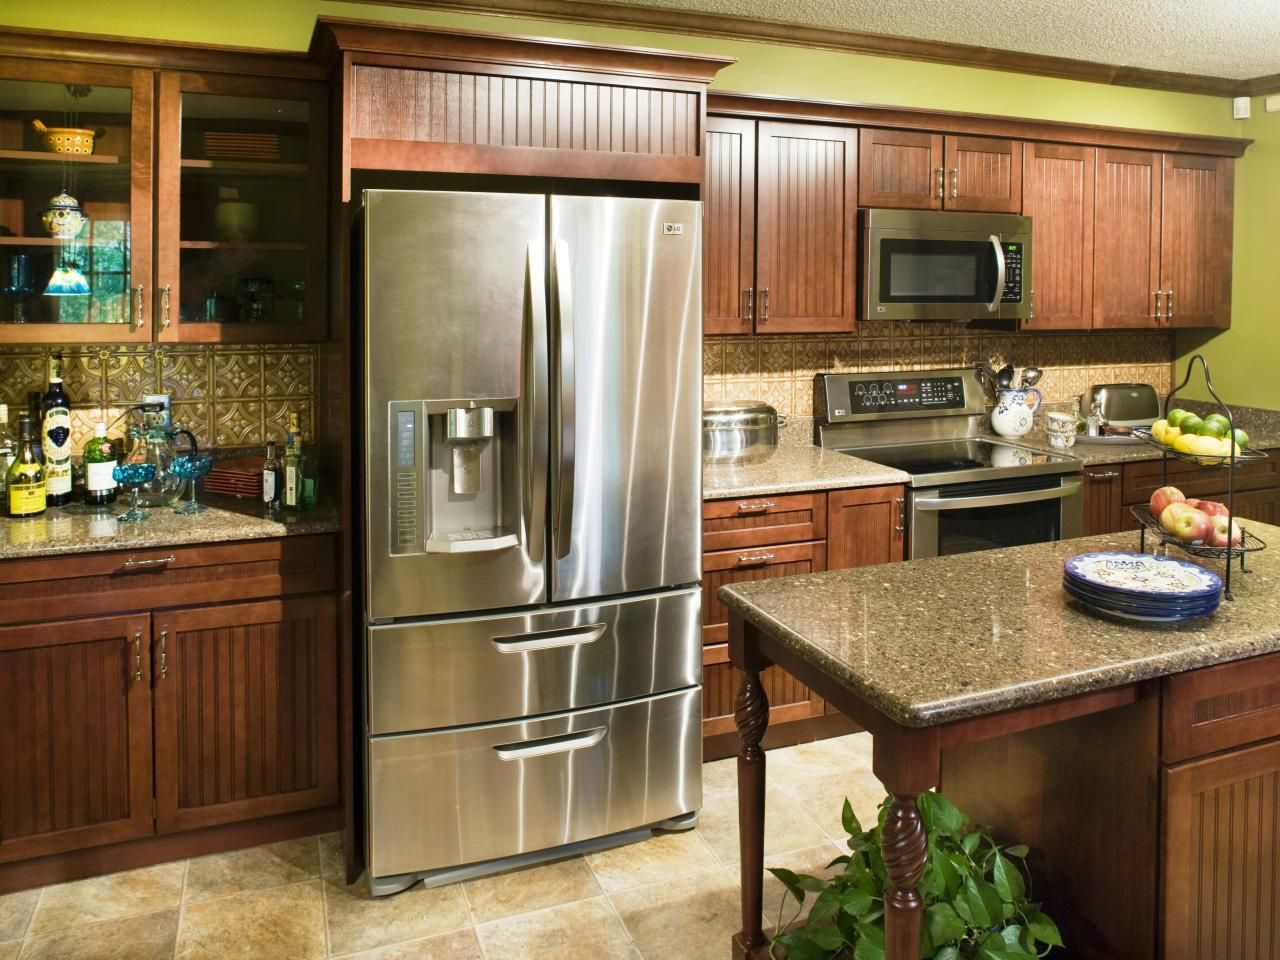 Completed Kitchen With Appliances Simple Kitchen Remodel Cheap Kitchen Remodel Kitchen Remodel Checklist